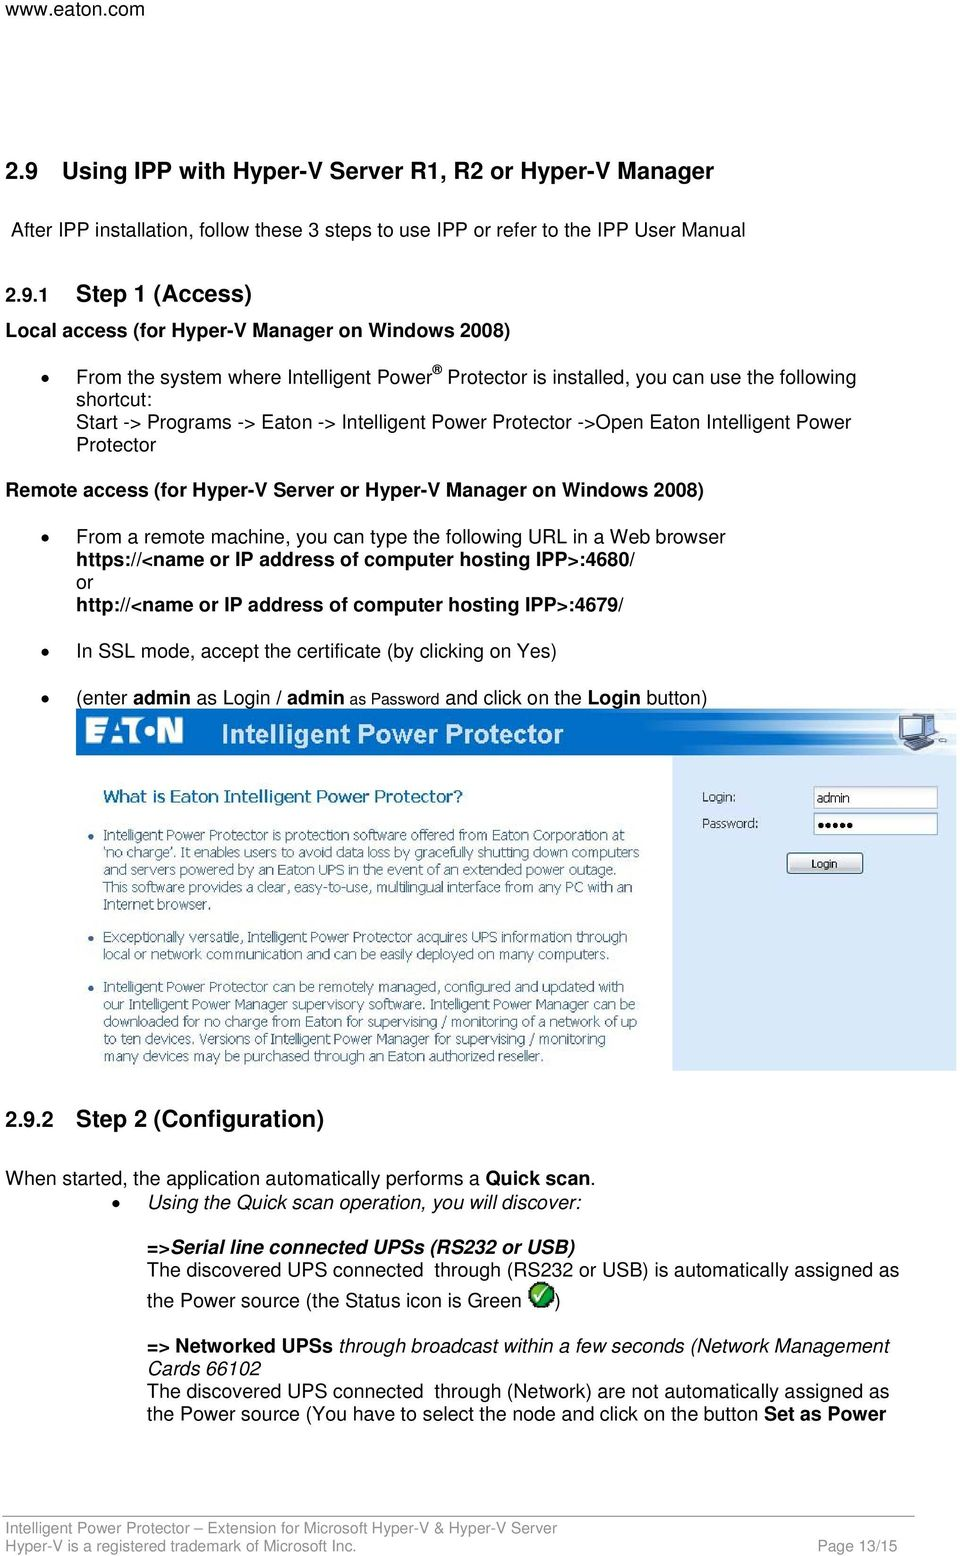 Intelligent Power Protector Remote access (for Hyper-V Server or Hyper-V Manager on Windows 2008) From a remote machine, you can type the following URL in a Web browser https://<name or IP address of